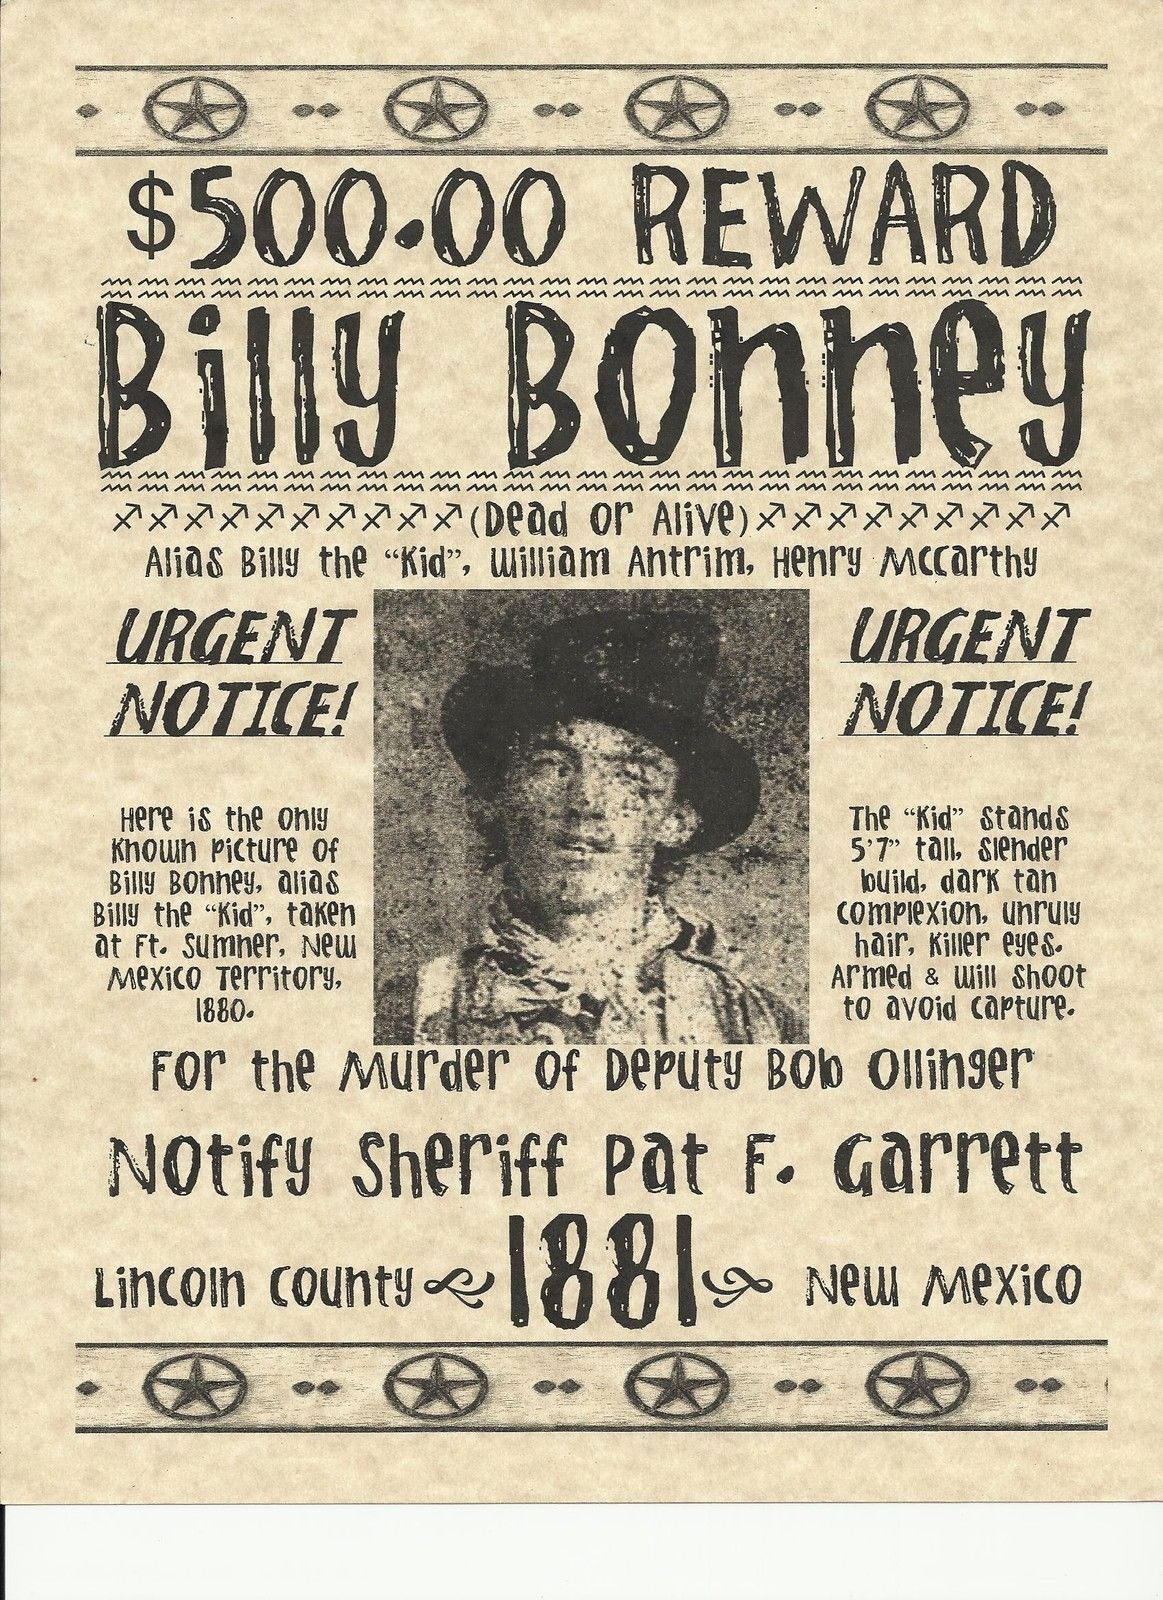 Pin By Amy Kilgore Betts On Just For Looks Billy The Kids Old West Outlaws Old West